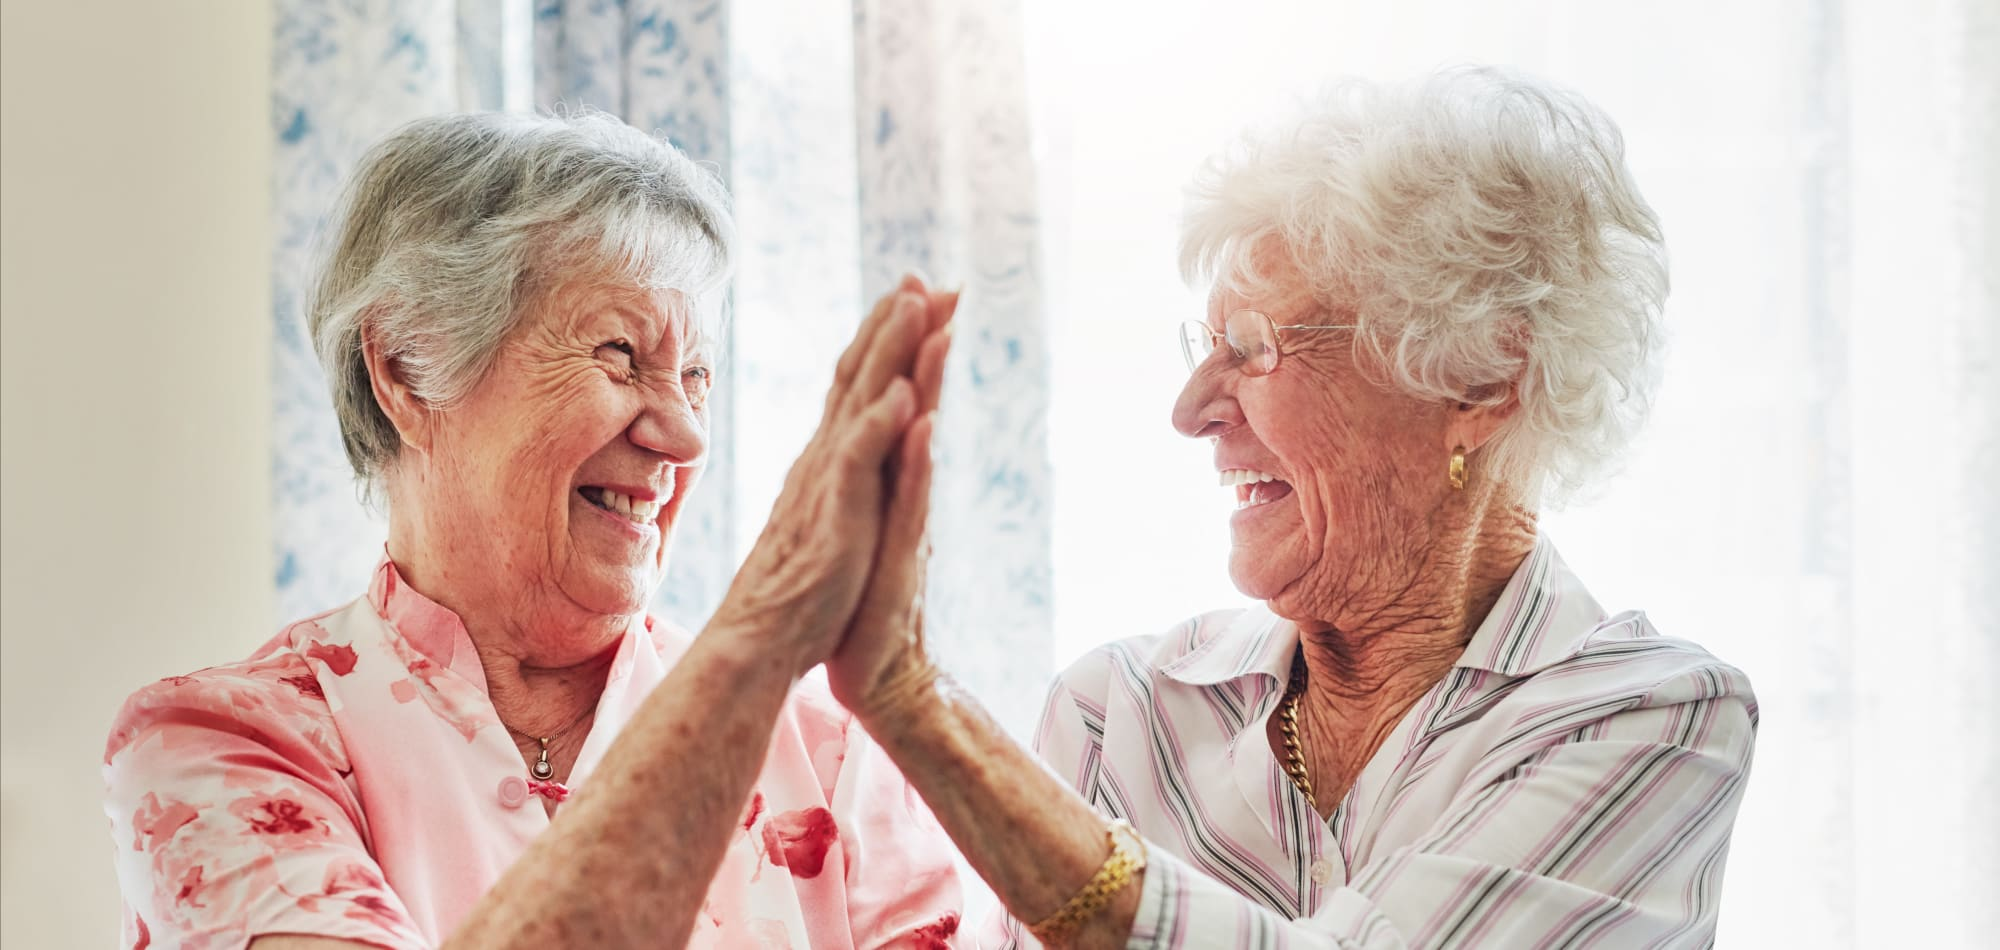 Respite care at Traditions of Owatonna in Owatonna, Minnesota.